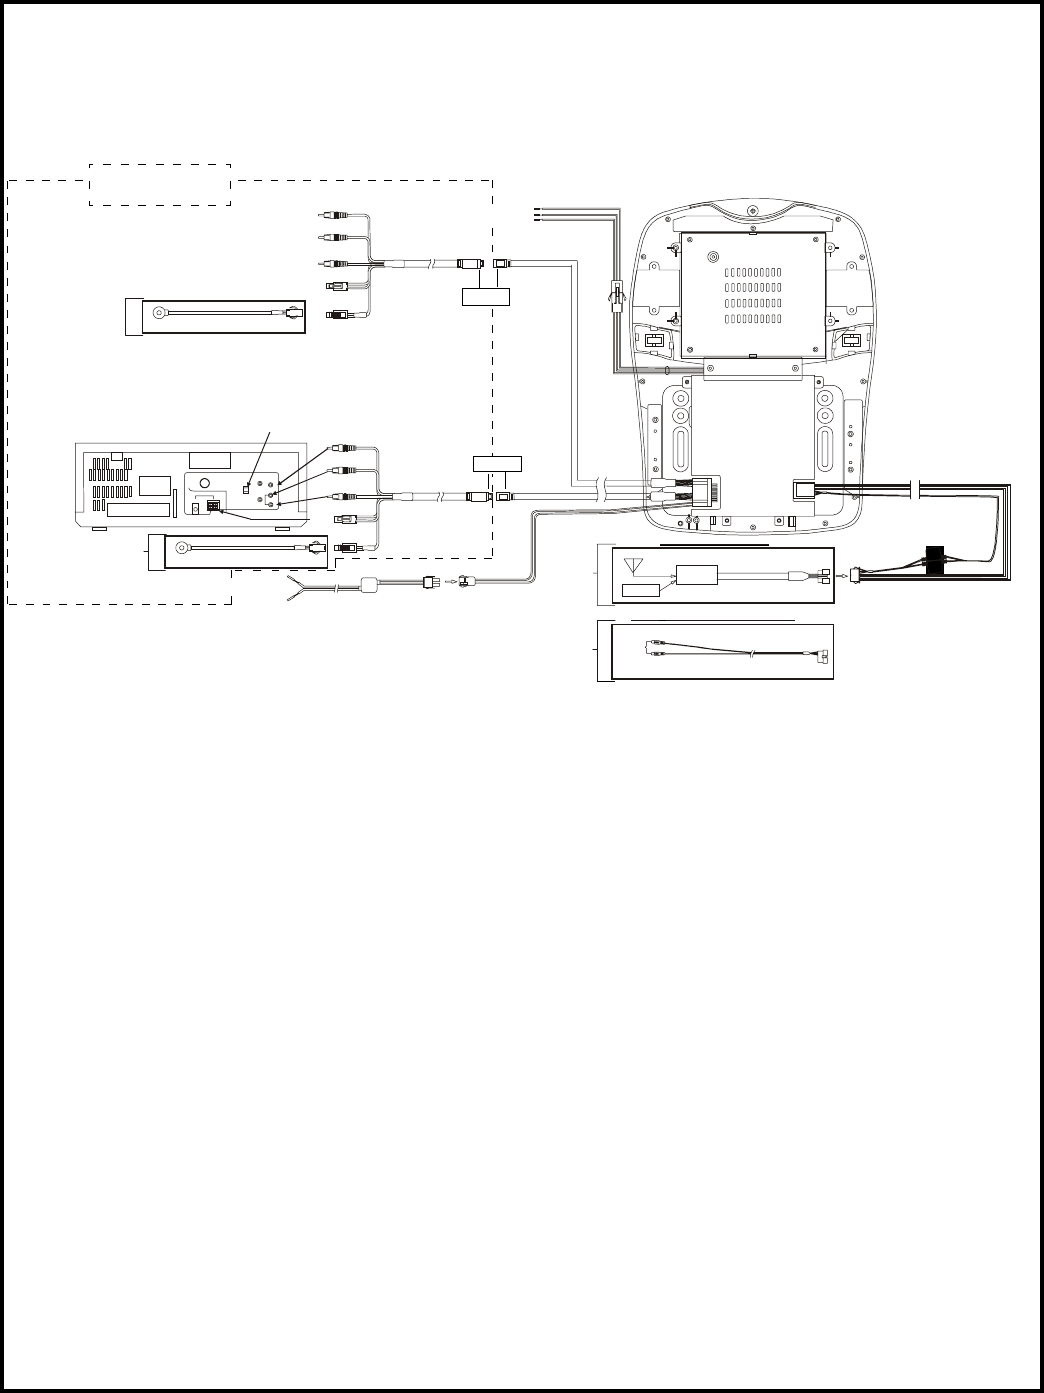 chameleon dvd player wiring diagram on